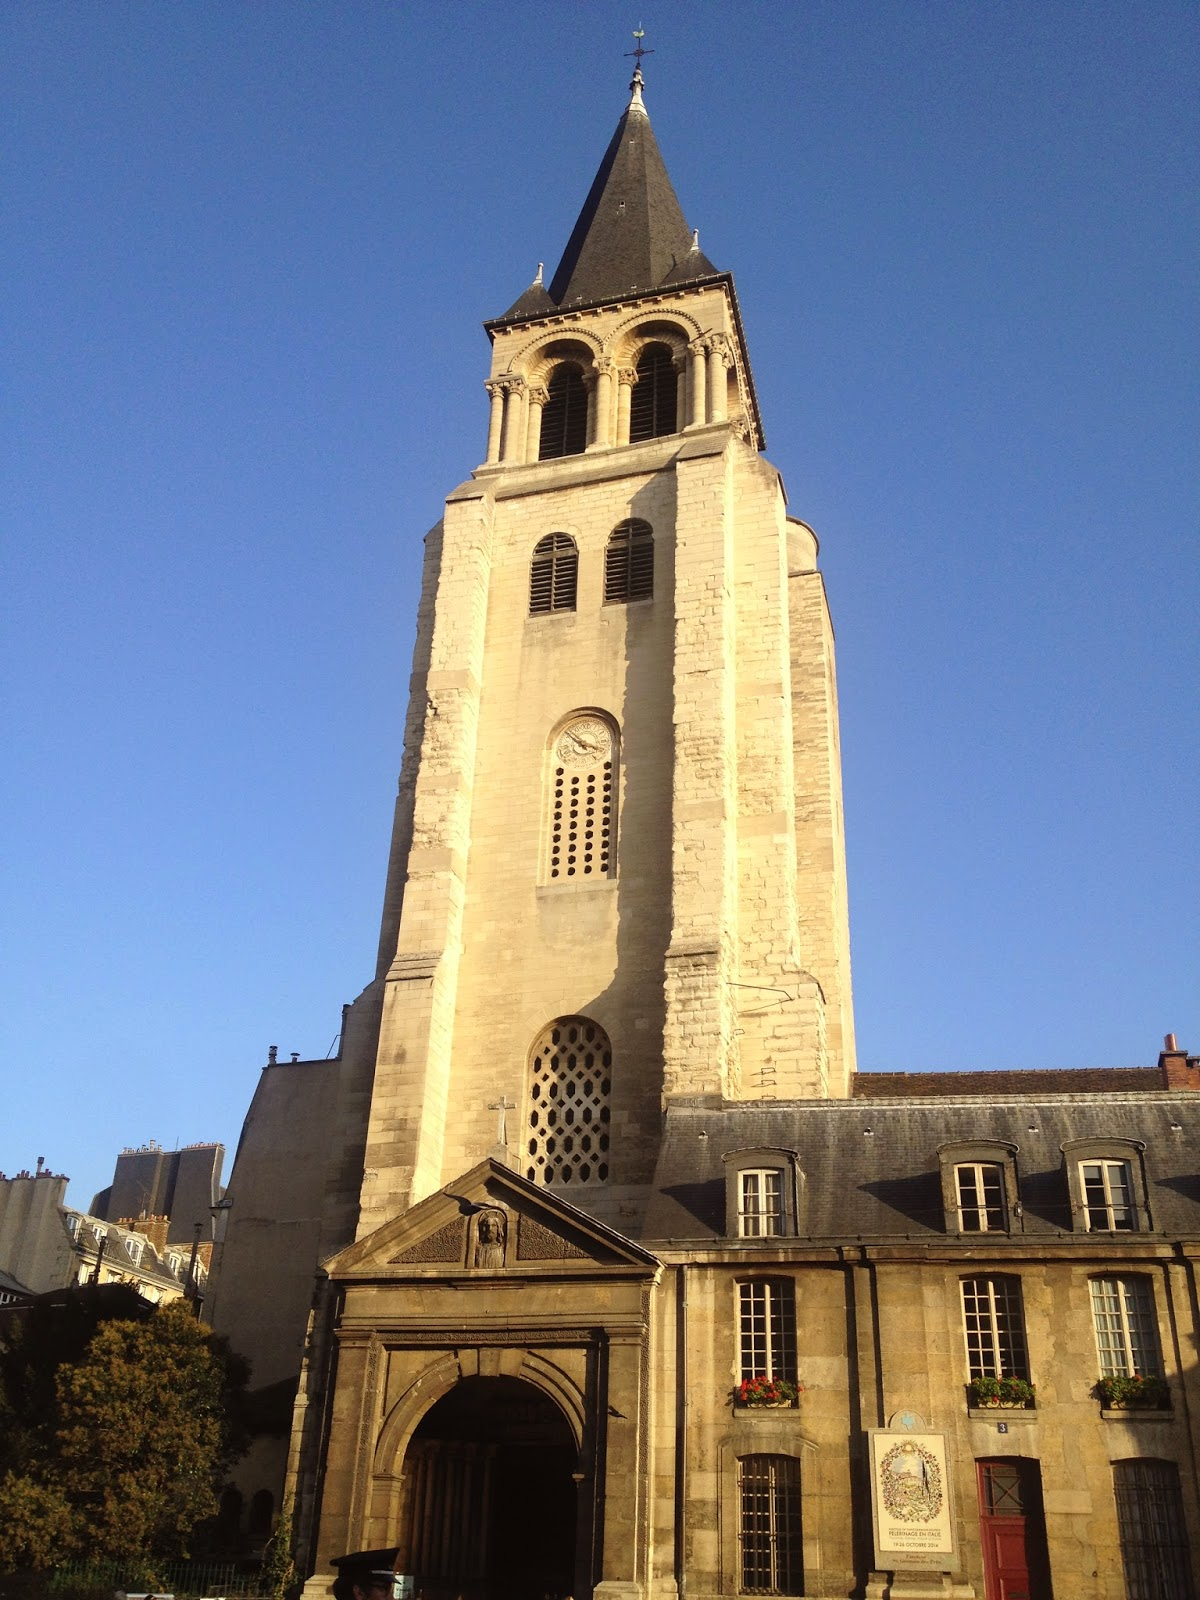 L'église Saint-Germain, Paris